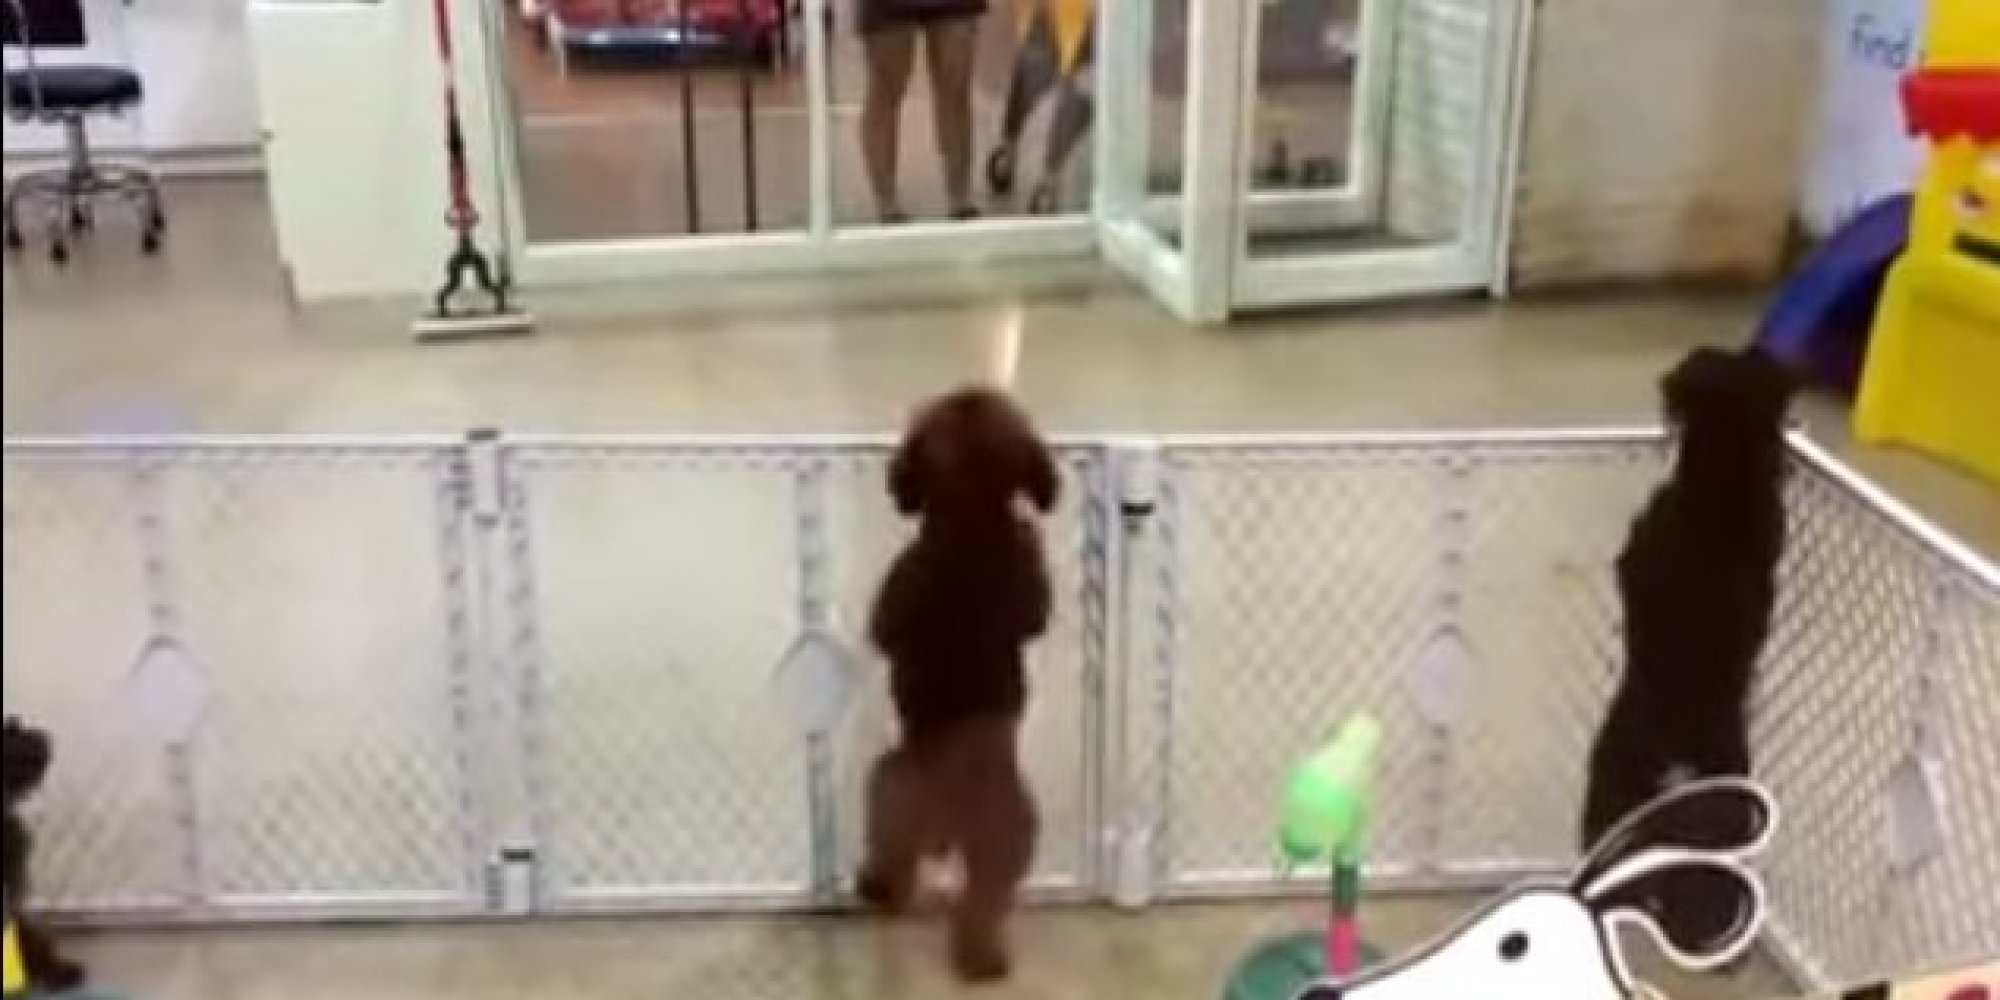 When this Bichon Frise spotted his owner, he acted like this, and it's unbelievable.